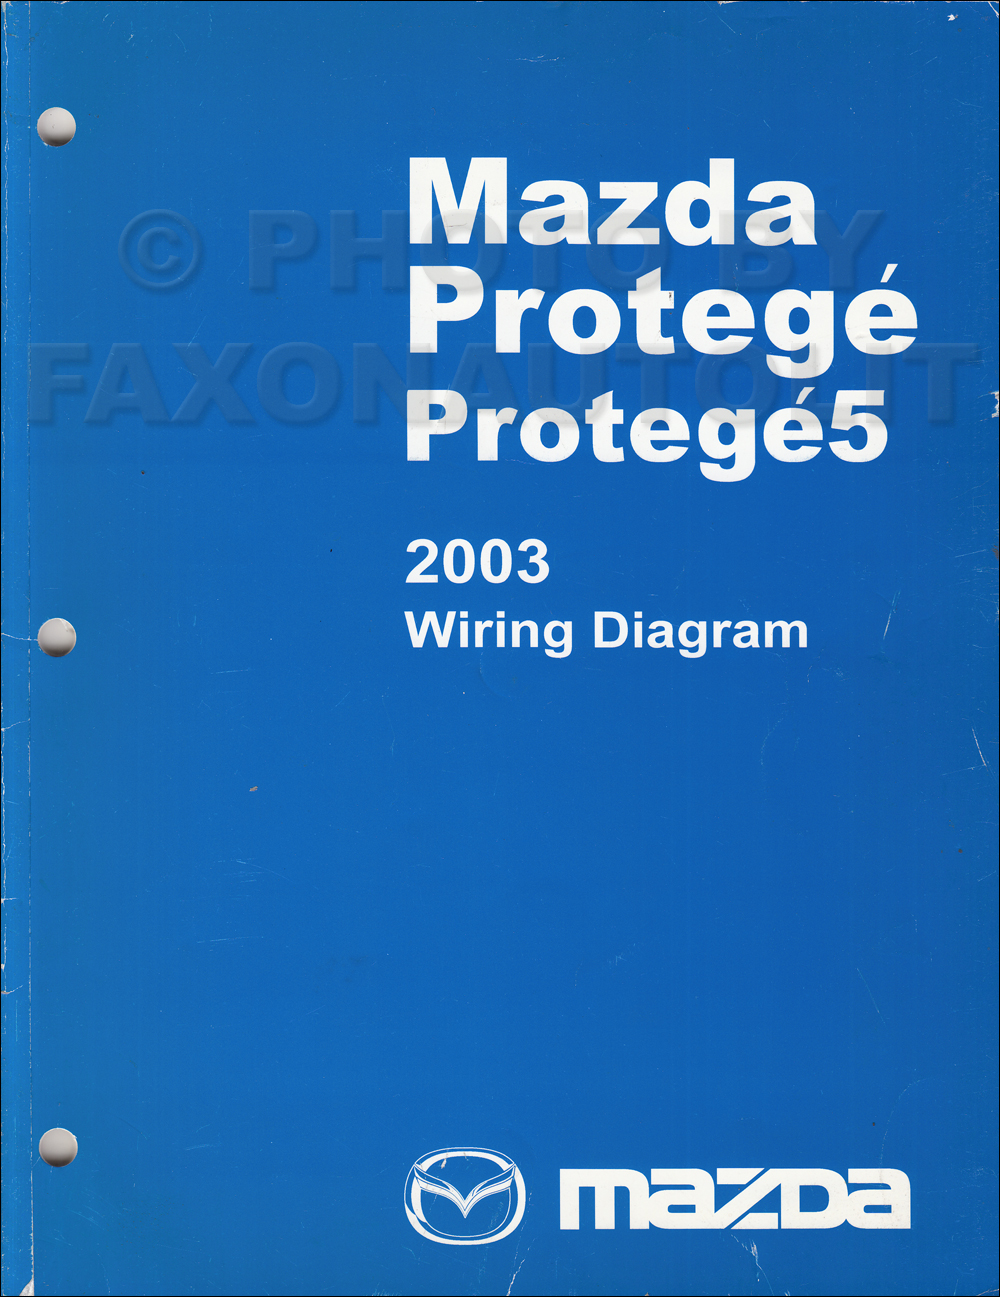 hight resolution of mazda protege5 fuse diagram wiring diagram detailed 2003 mazda protege fuse box 2003 mazda protege5 fuse box